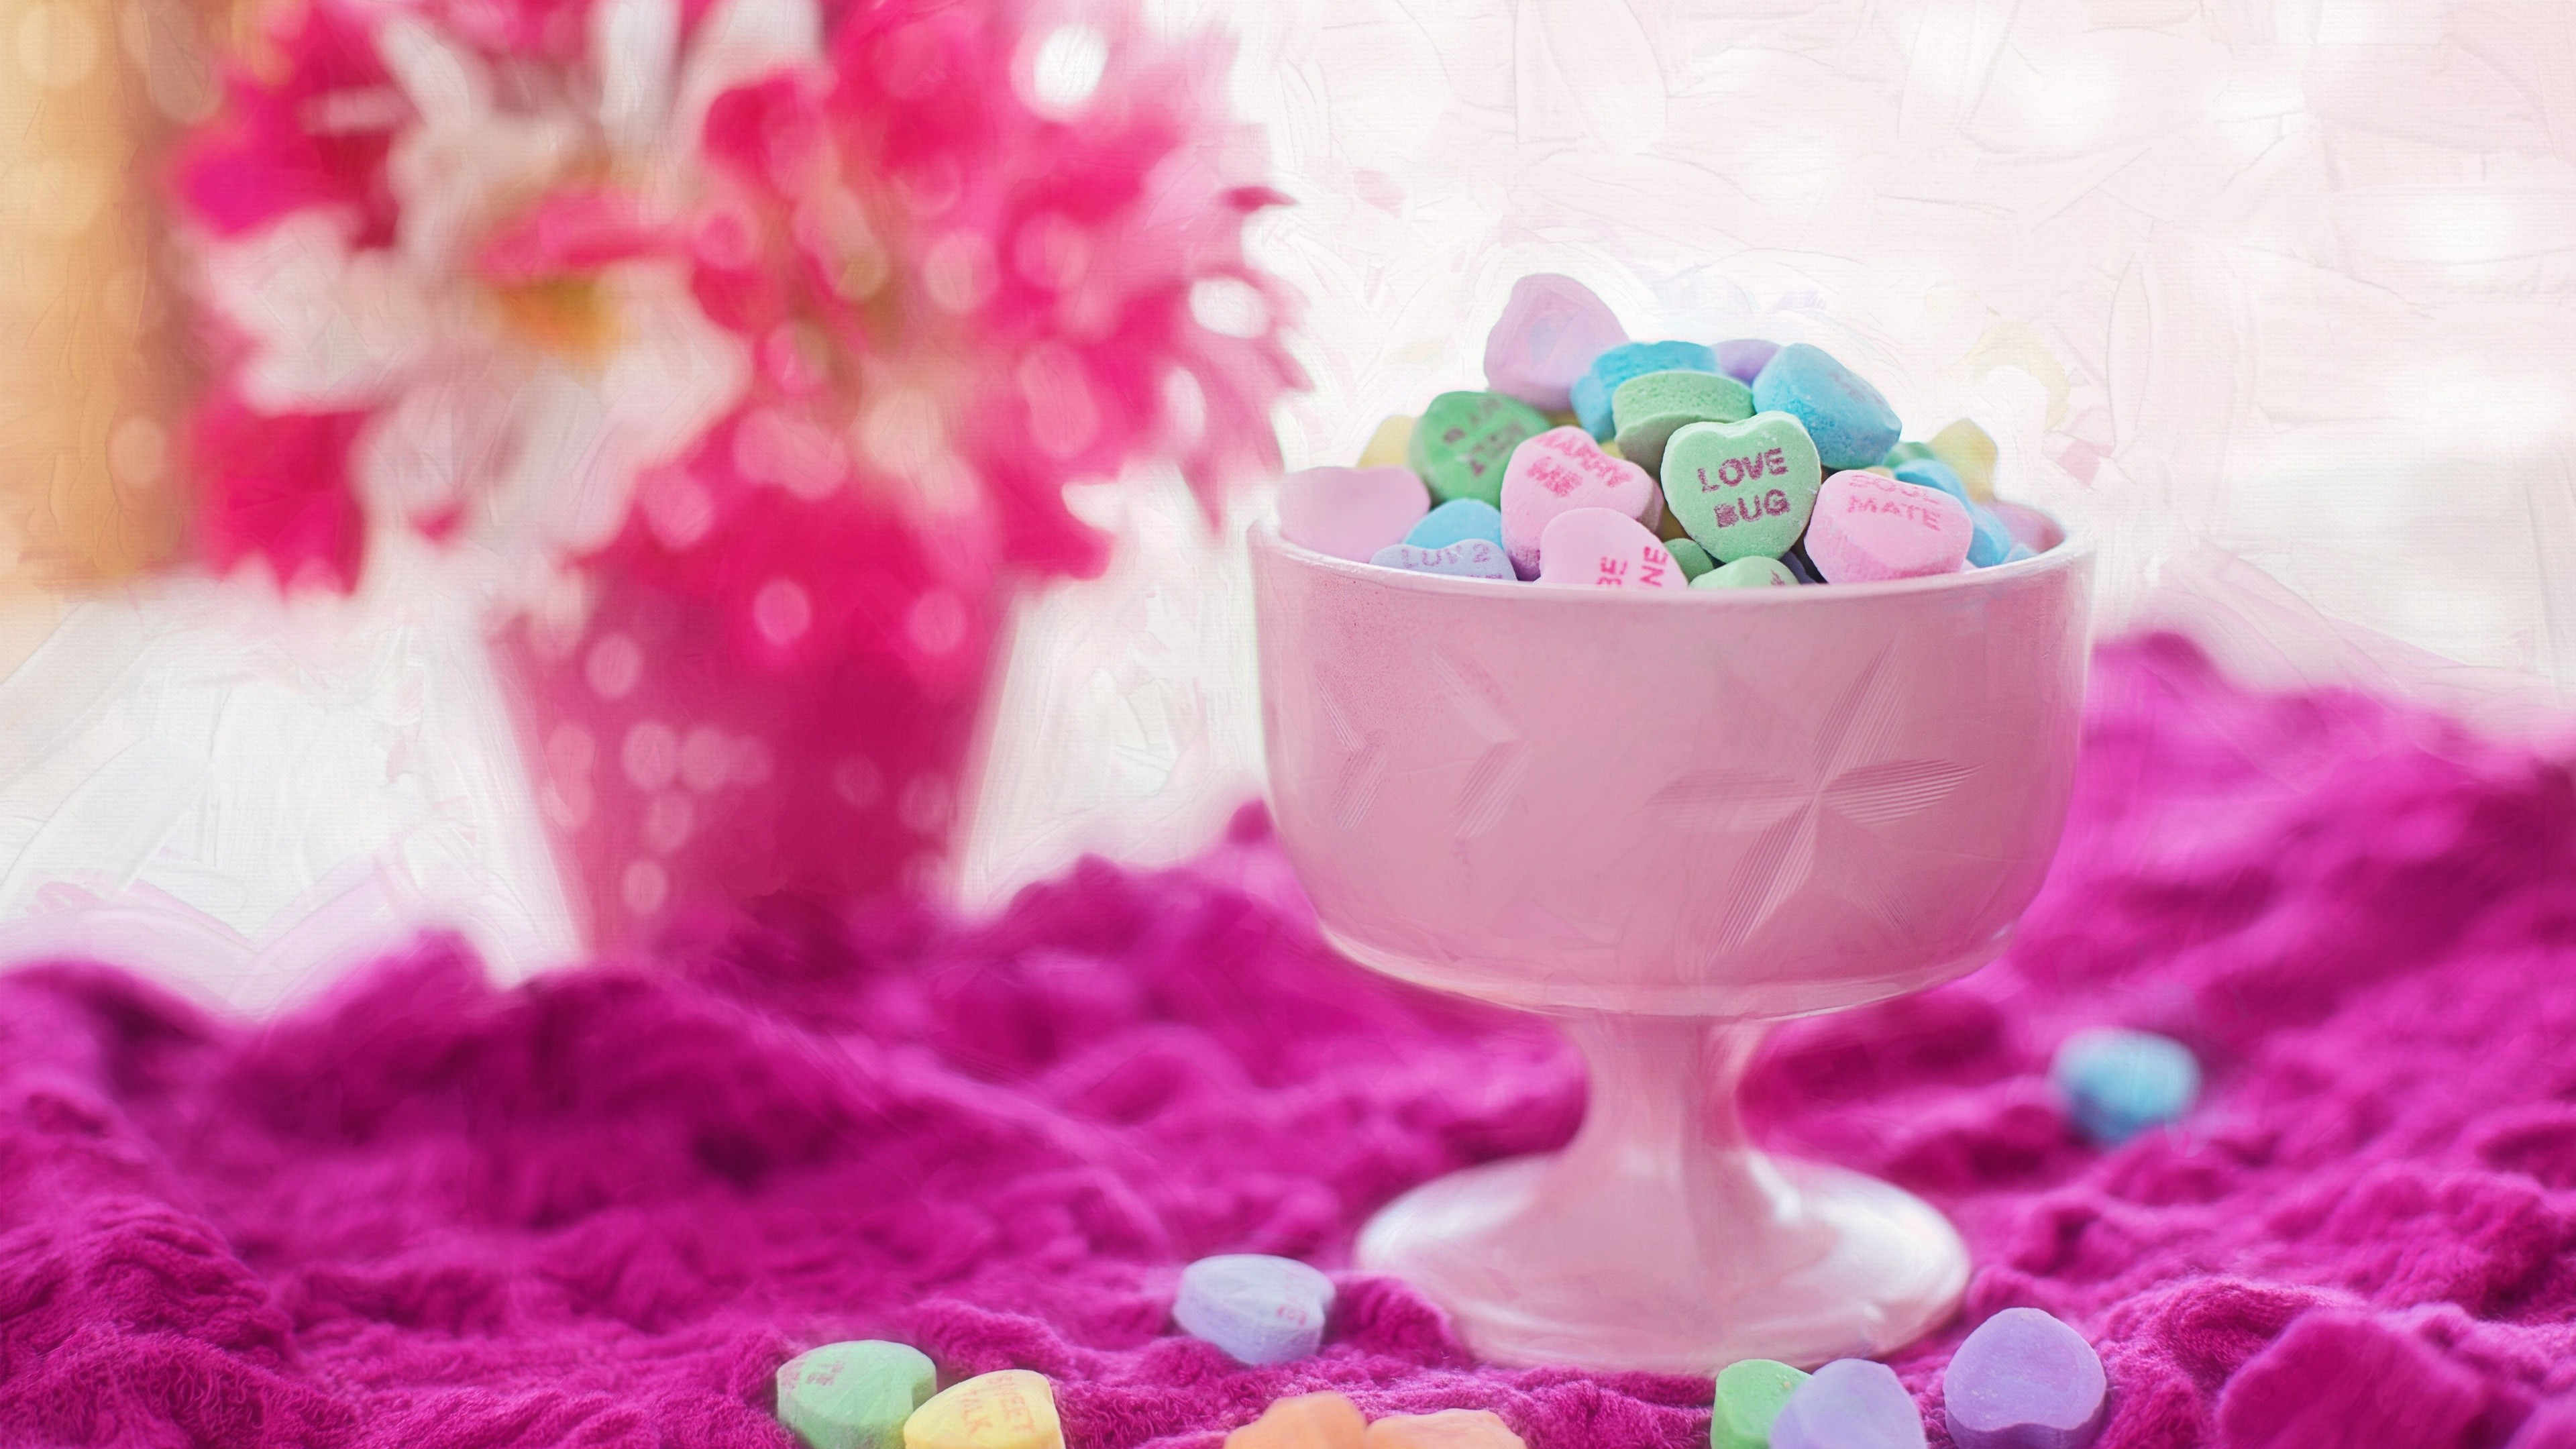 3840x2160 Valentine Love Hearts Candies Wallpapers